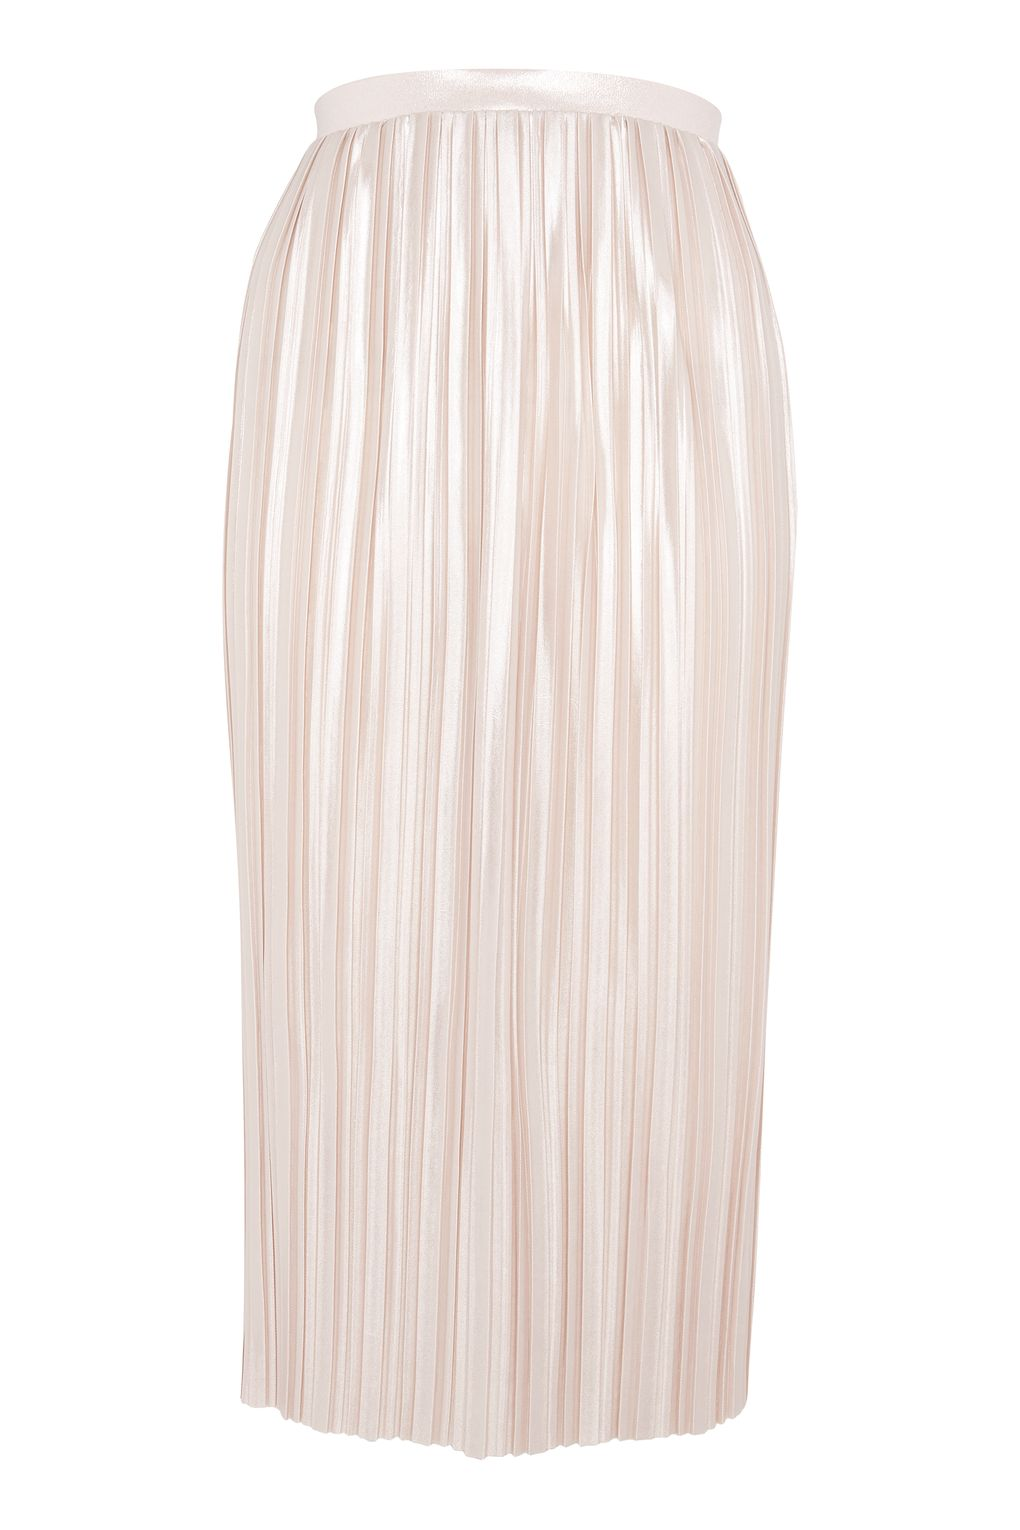 ef5e58706e Metallic Jersey Pleat Skirt - ShopperBoard